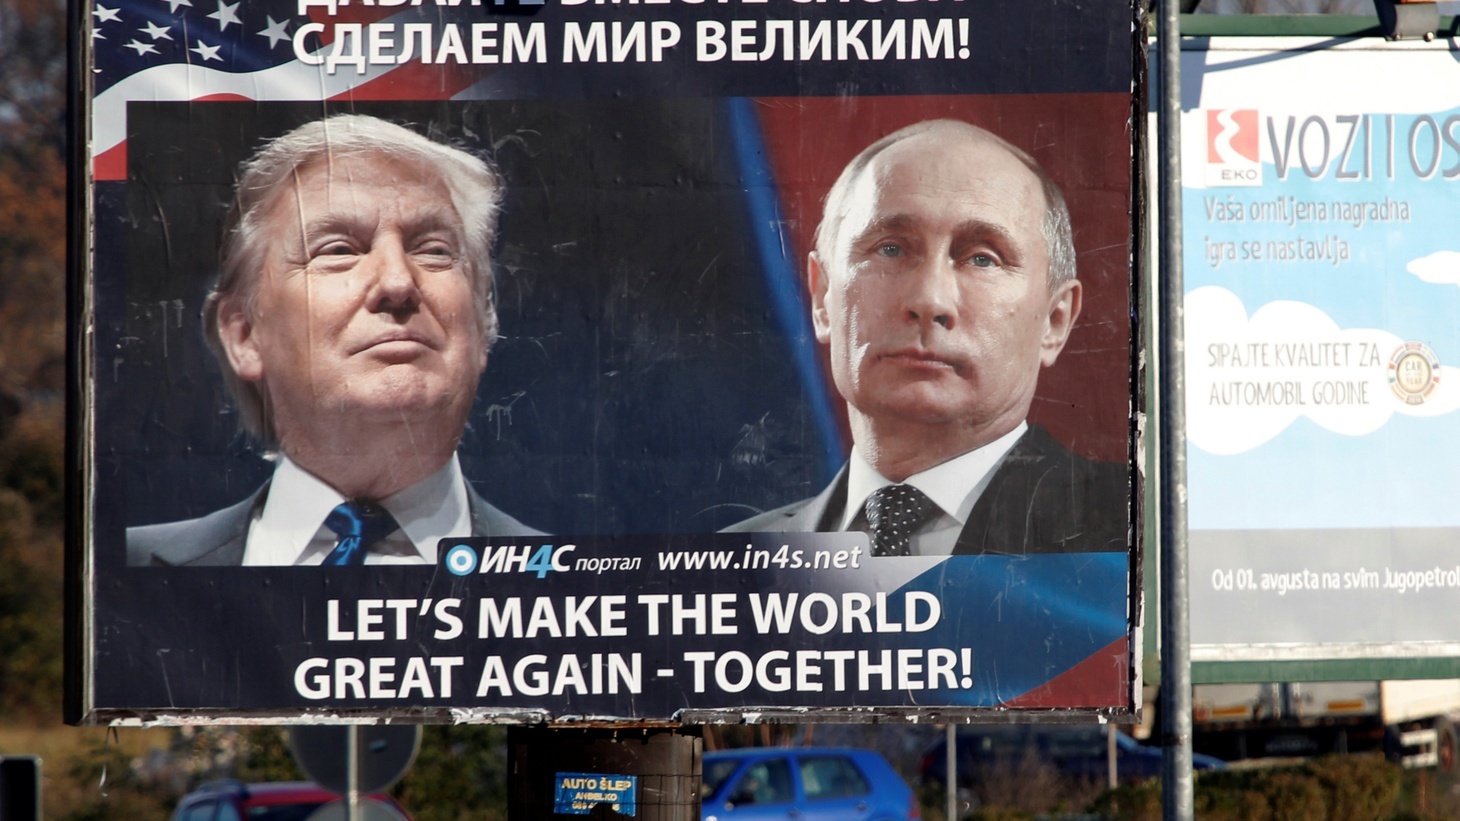 The CIA says Russia meddled in the US election to help Donald Trump win. The FBI was reluctant to agree with the CIA on Russia's motives. With Donald Trump cozying up to Russia, the Republican Party is split.